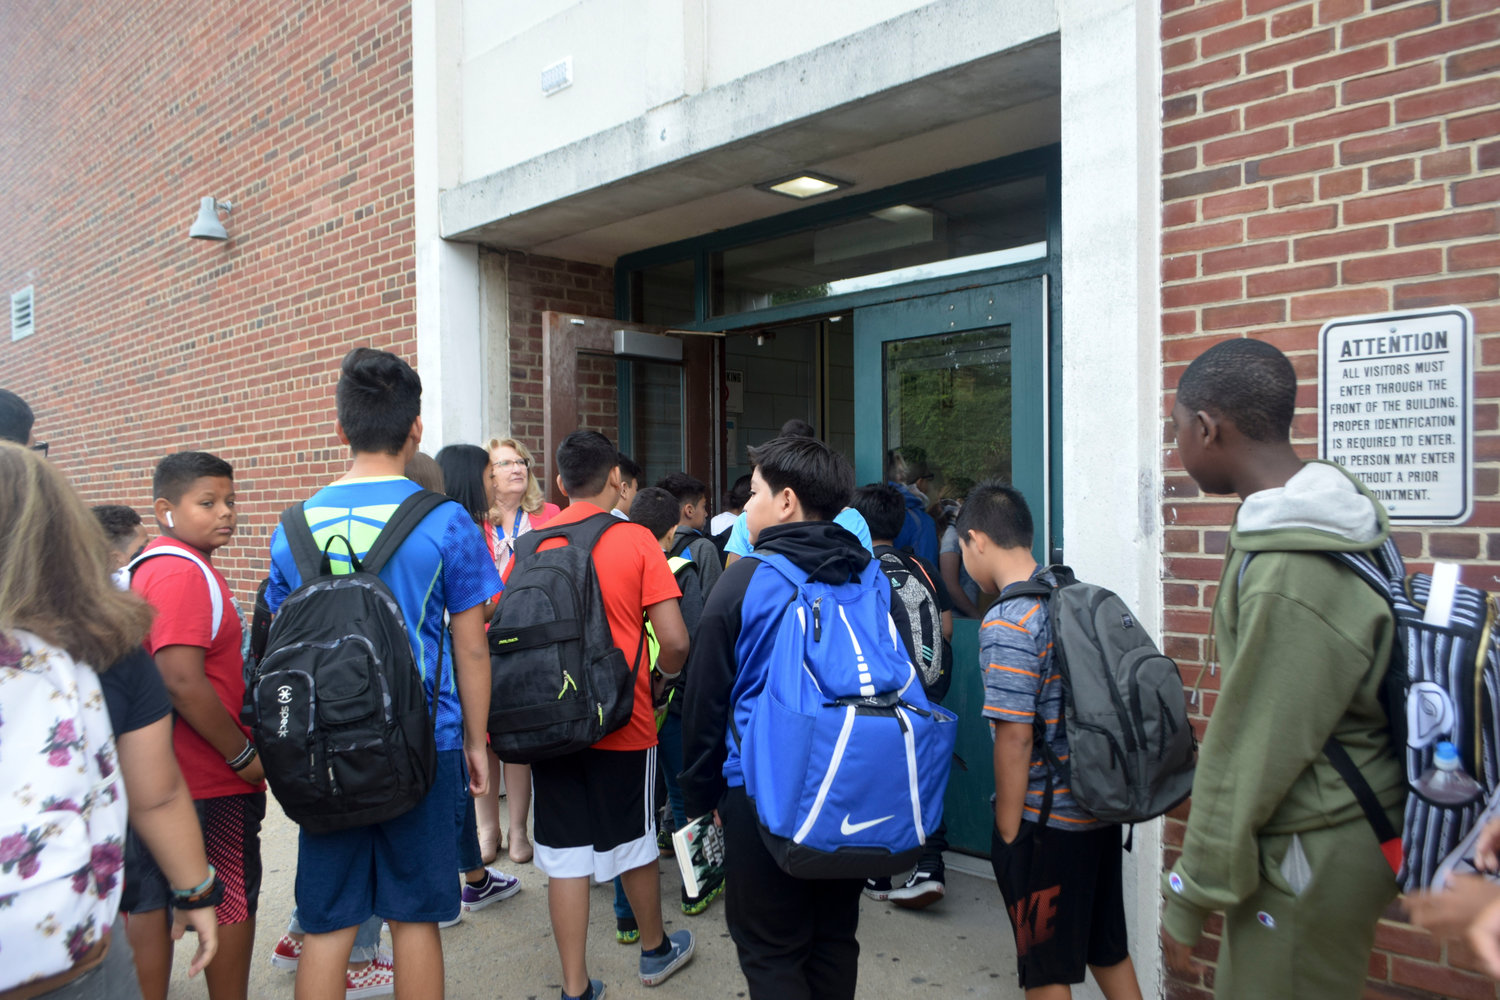 With the de rigueur backpacks attached, middle school students filed into the building with Superintendent Dr. Ann Pedersen at the door.